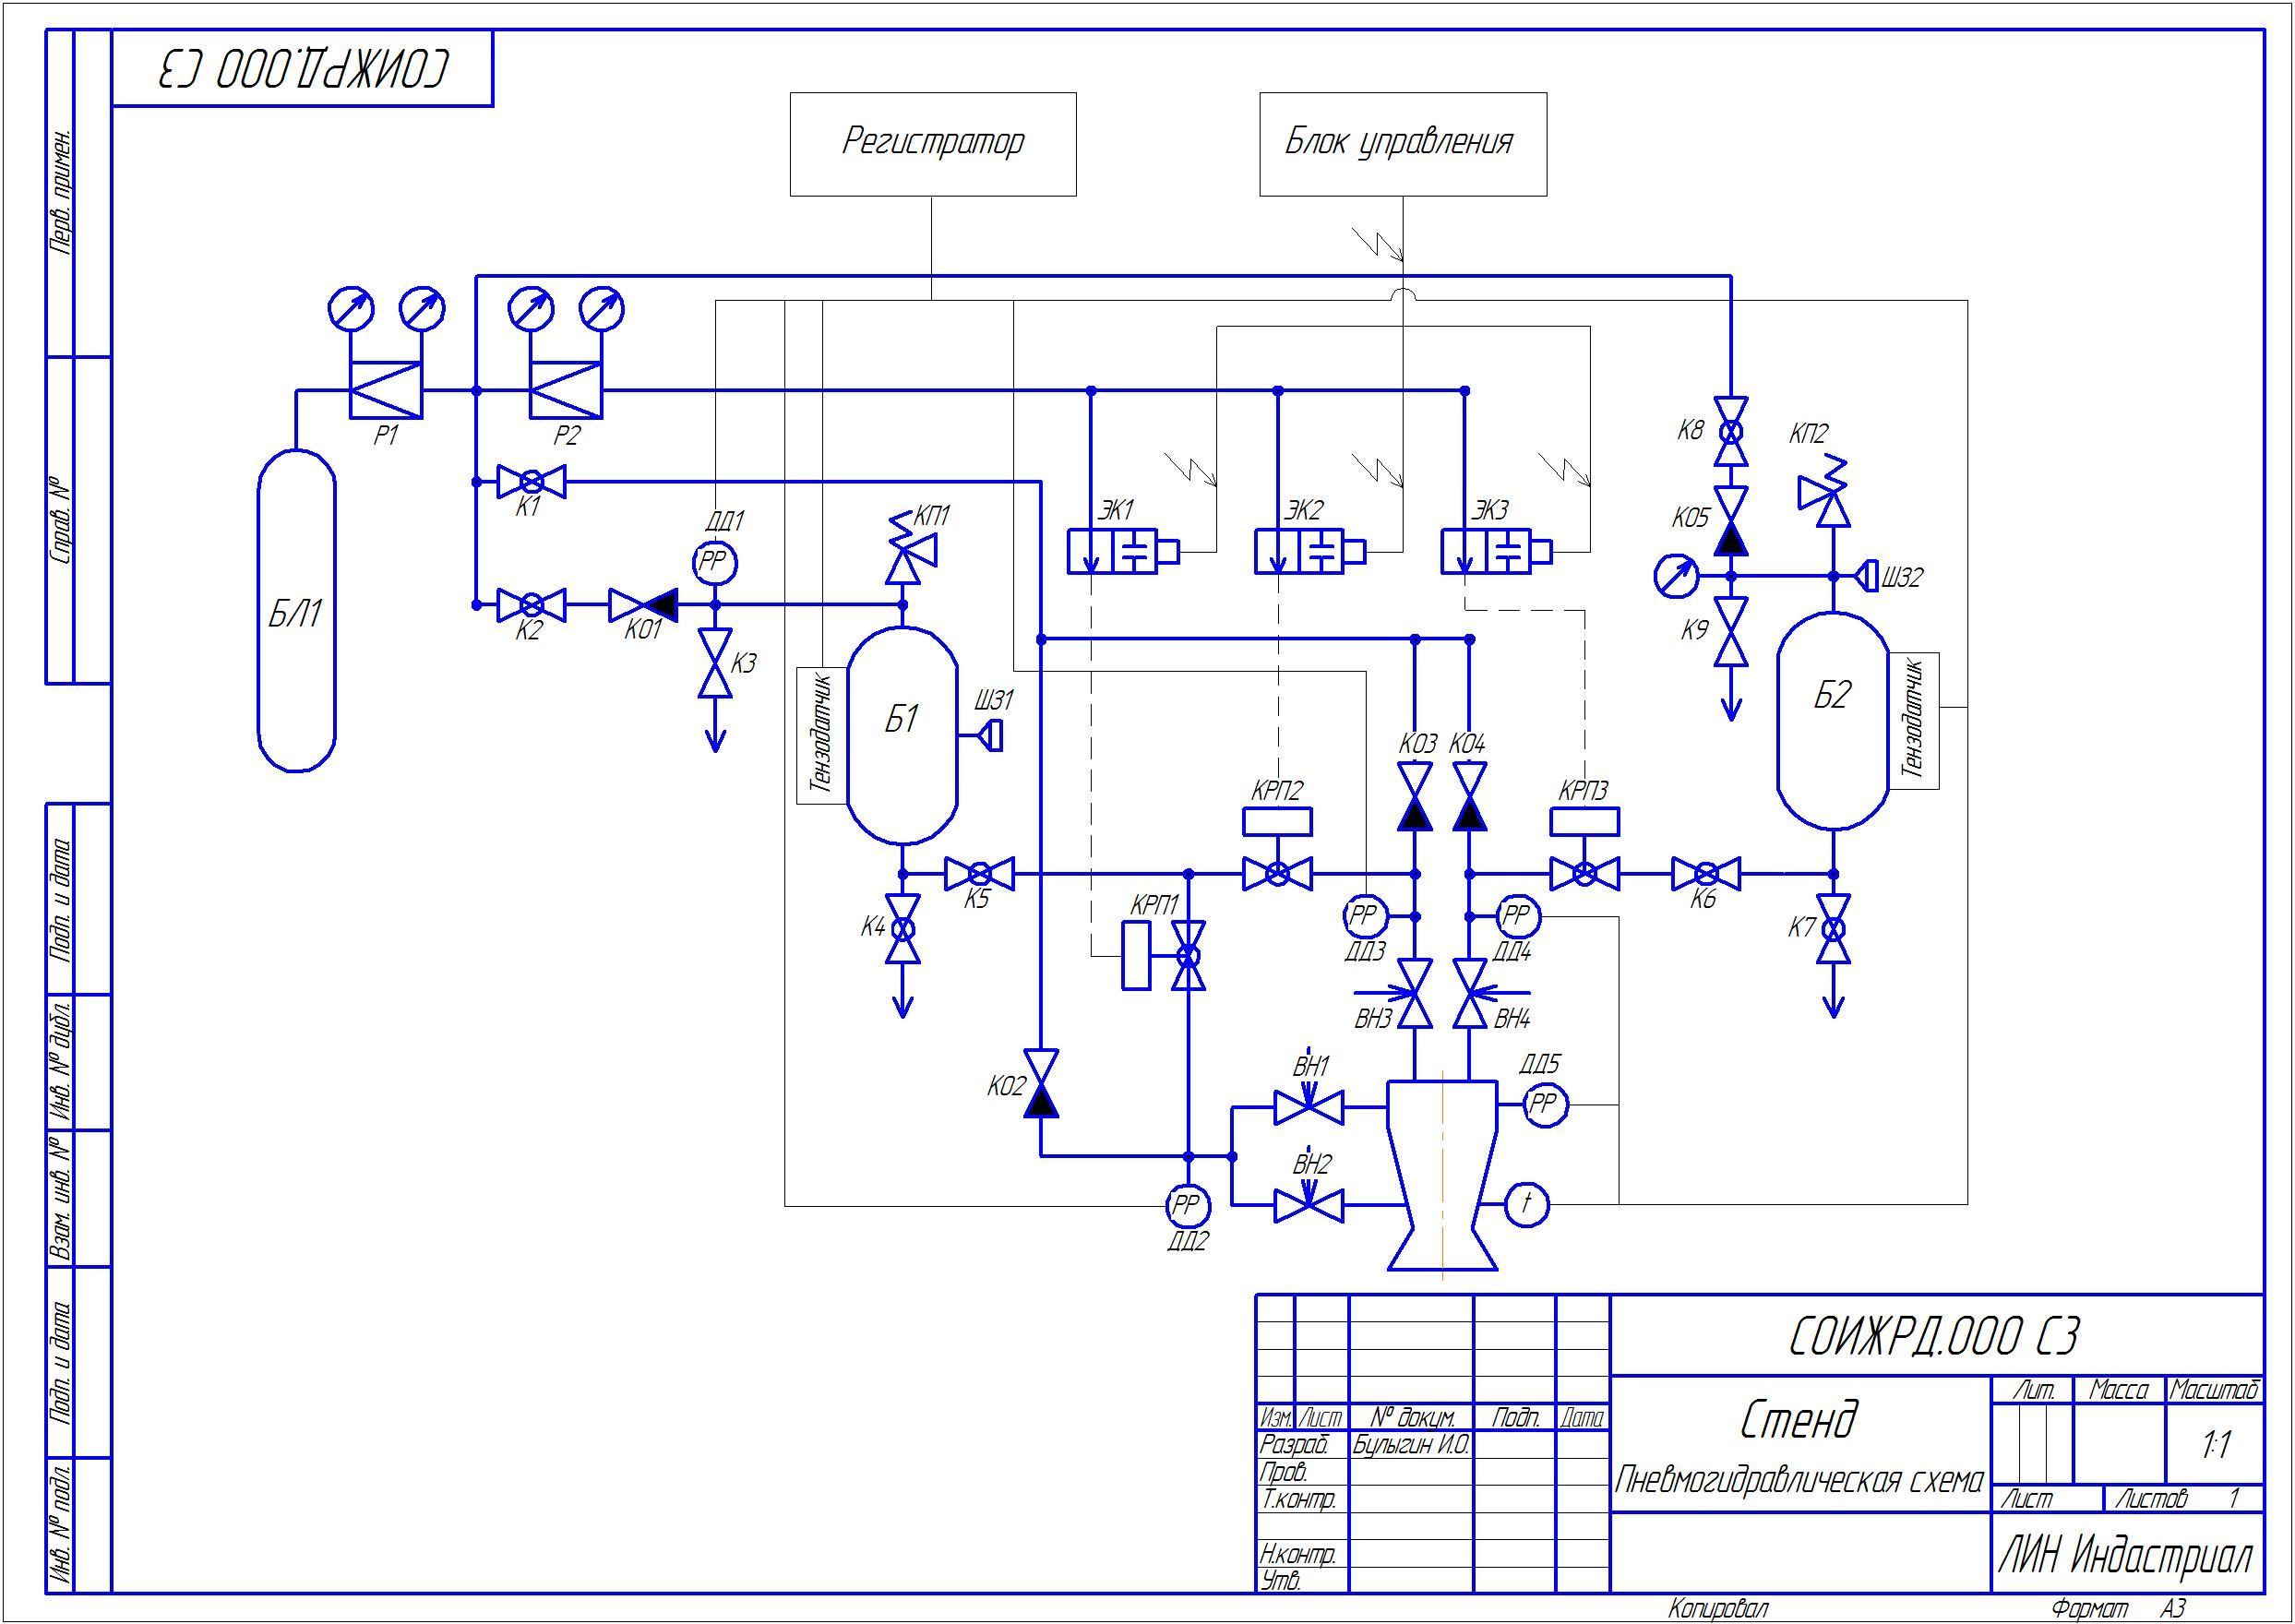 News Assembly Of The Engine Test Stand Continues Fuel Tank Schematic Diagram Nitrogen From Bl1 1 Gas Cylinder Is Used To Pressurize Oxidizer And Tanks Control Valves On Lines Feeding Main Propellants Coolant